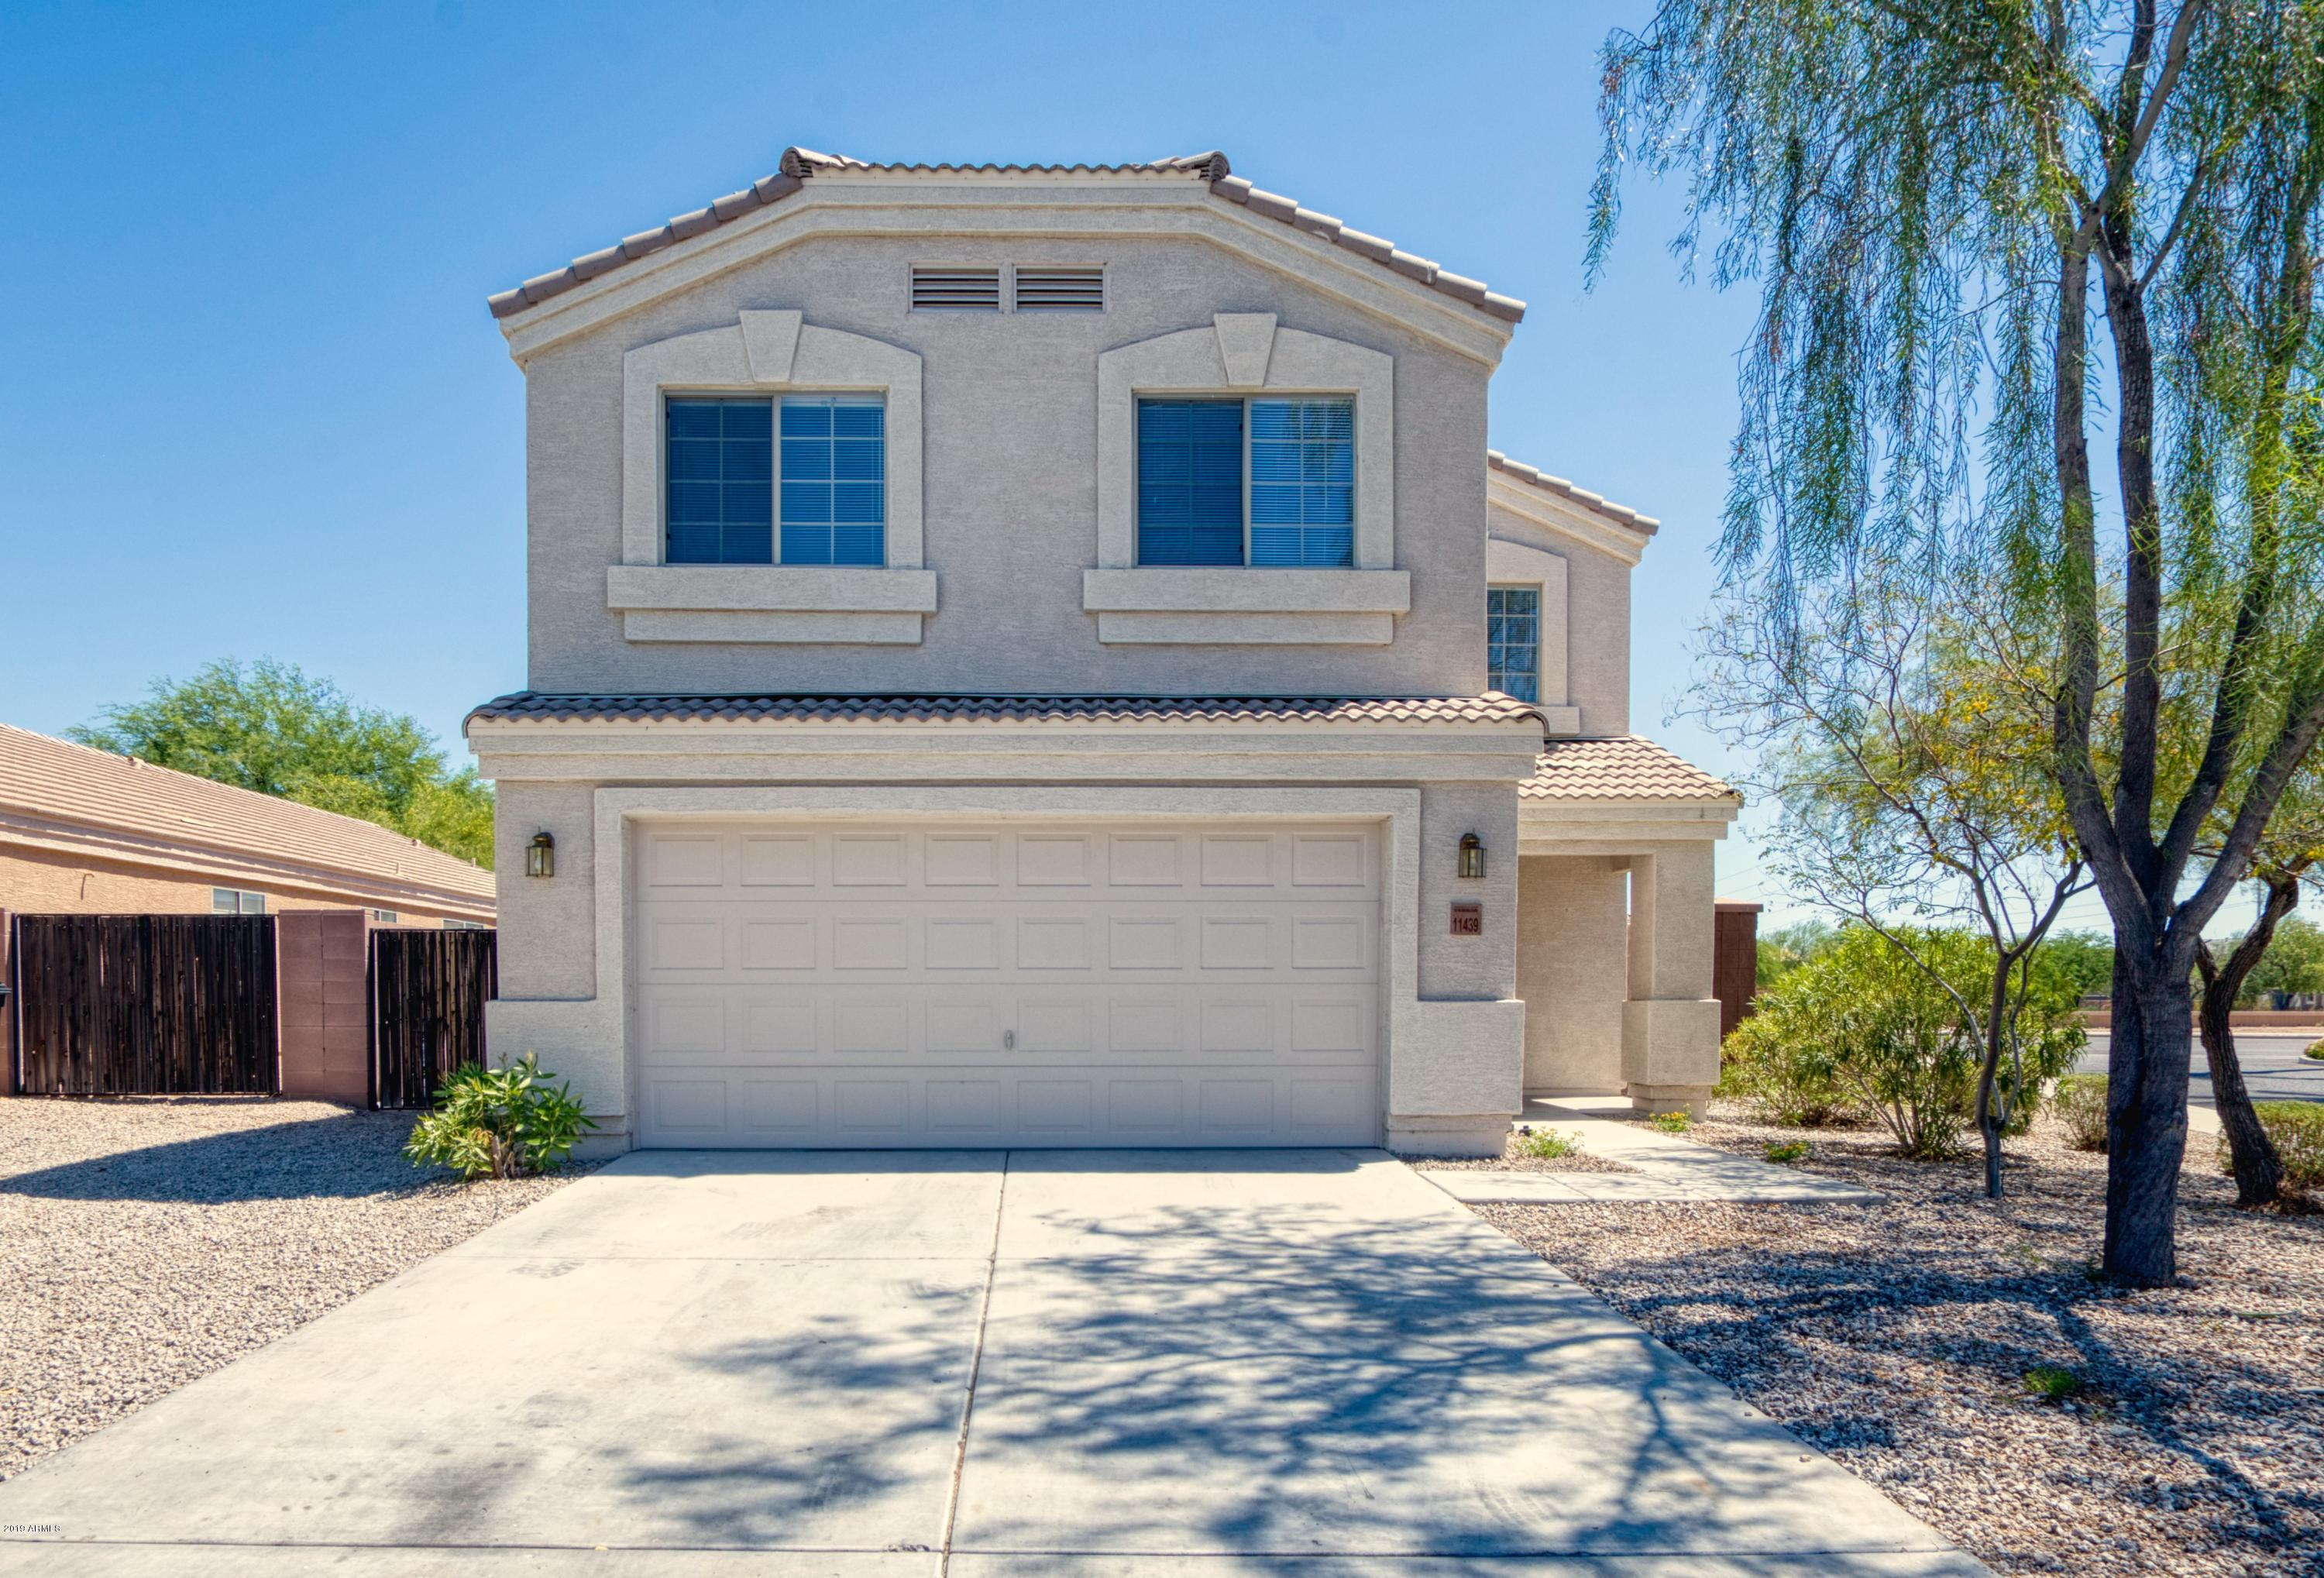 11439 W ASHLEY CHANTIL Drive, Surprise, Arizona